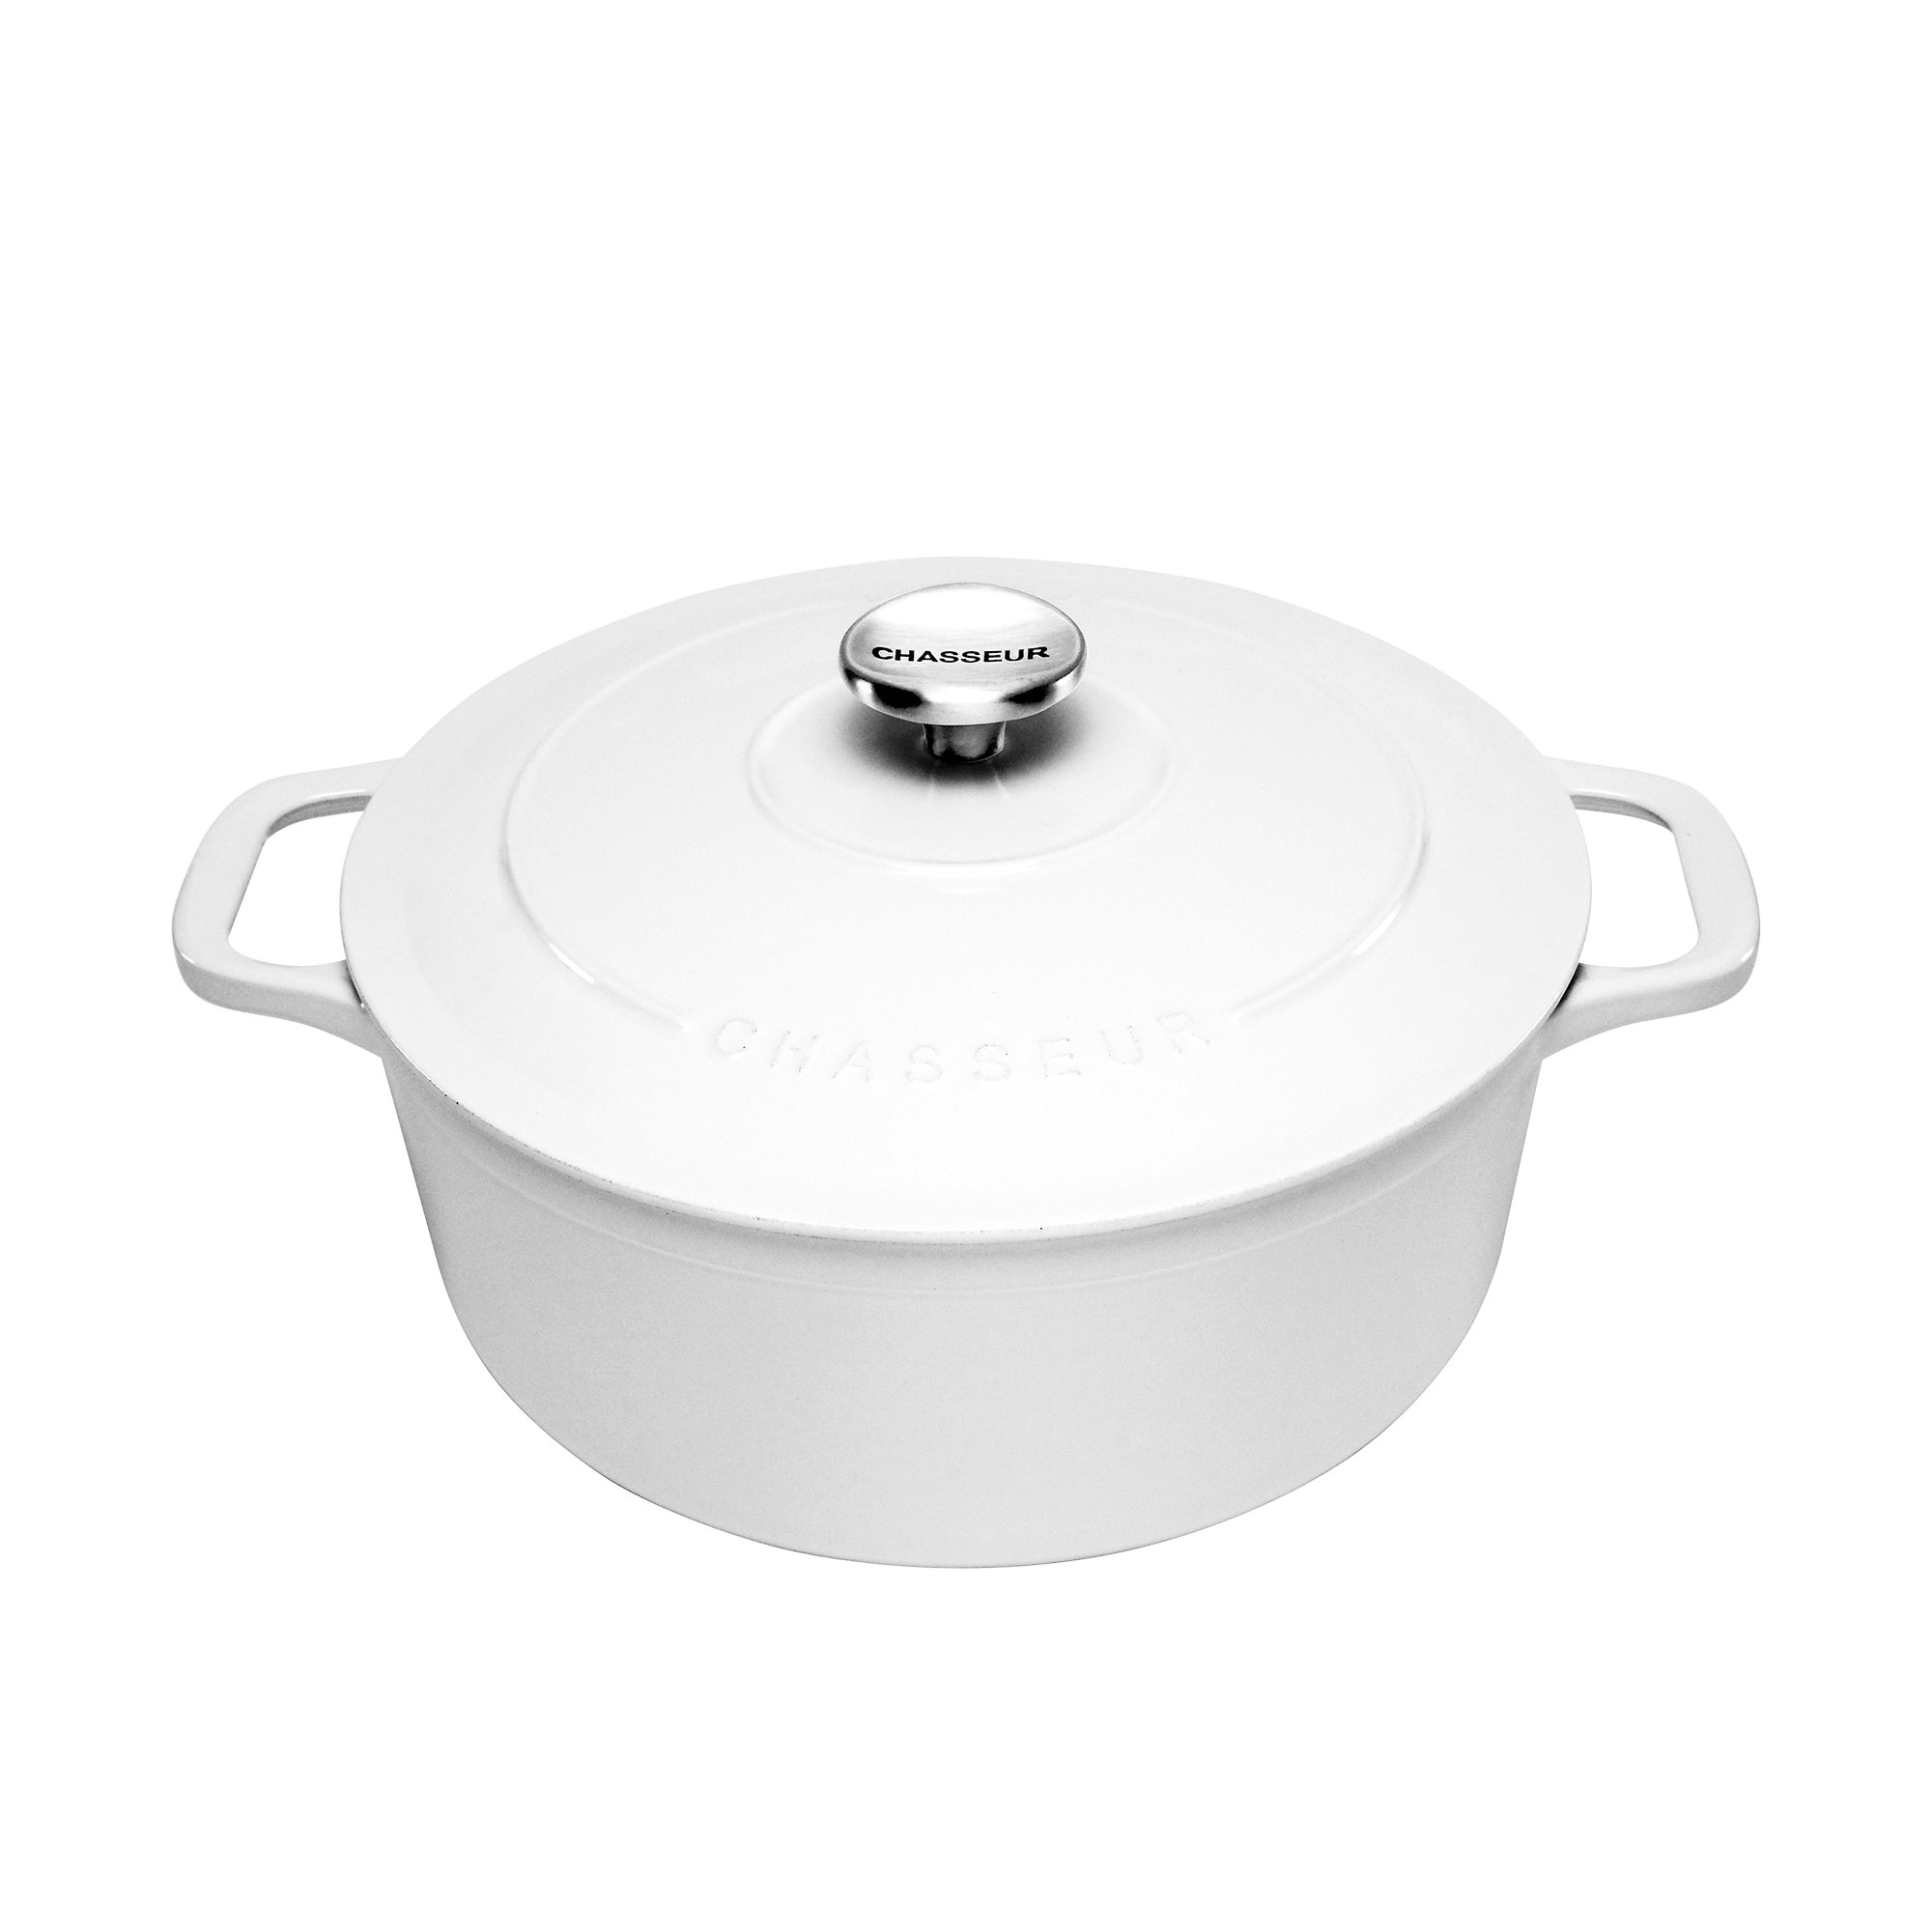 Chasseur Round French Oven 28cm - 6.1L Brilliant White